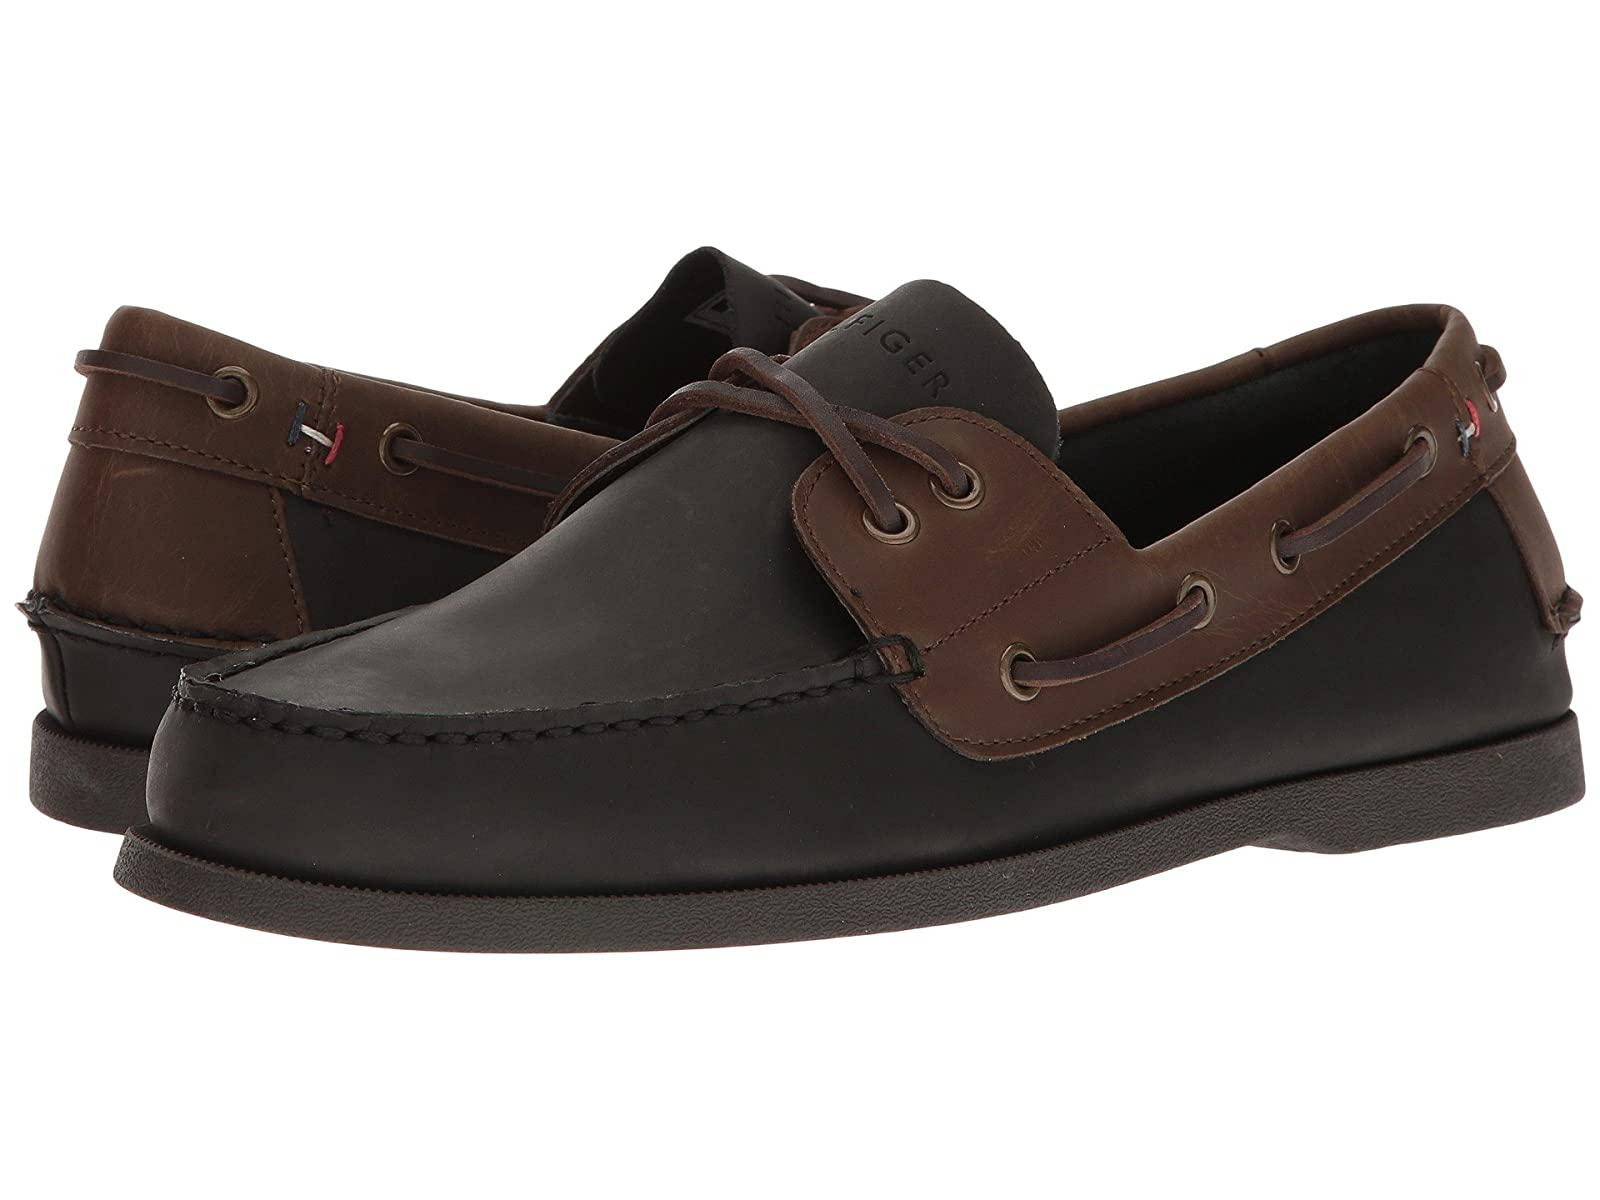 Tommy Hilfiger BowmanCheap and distinctive eye-catching shoes